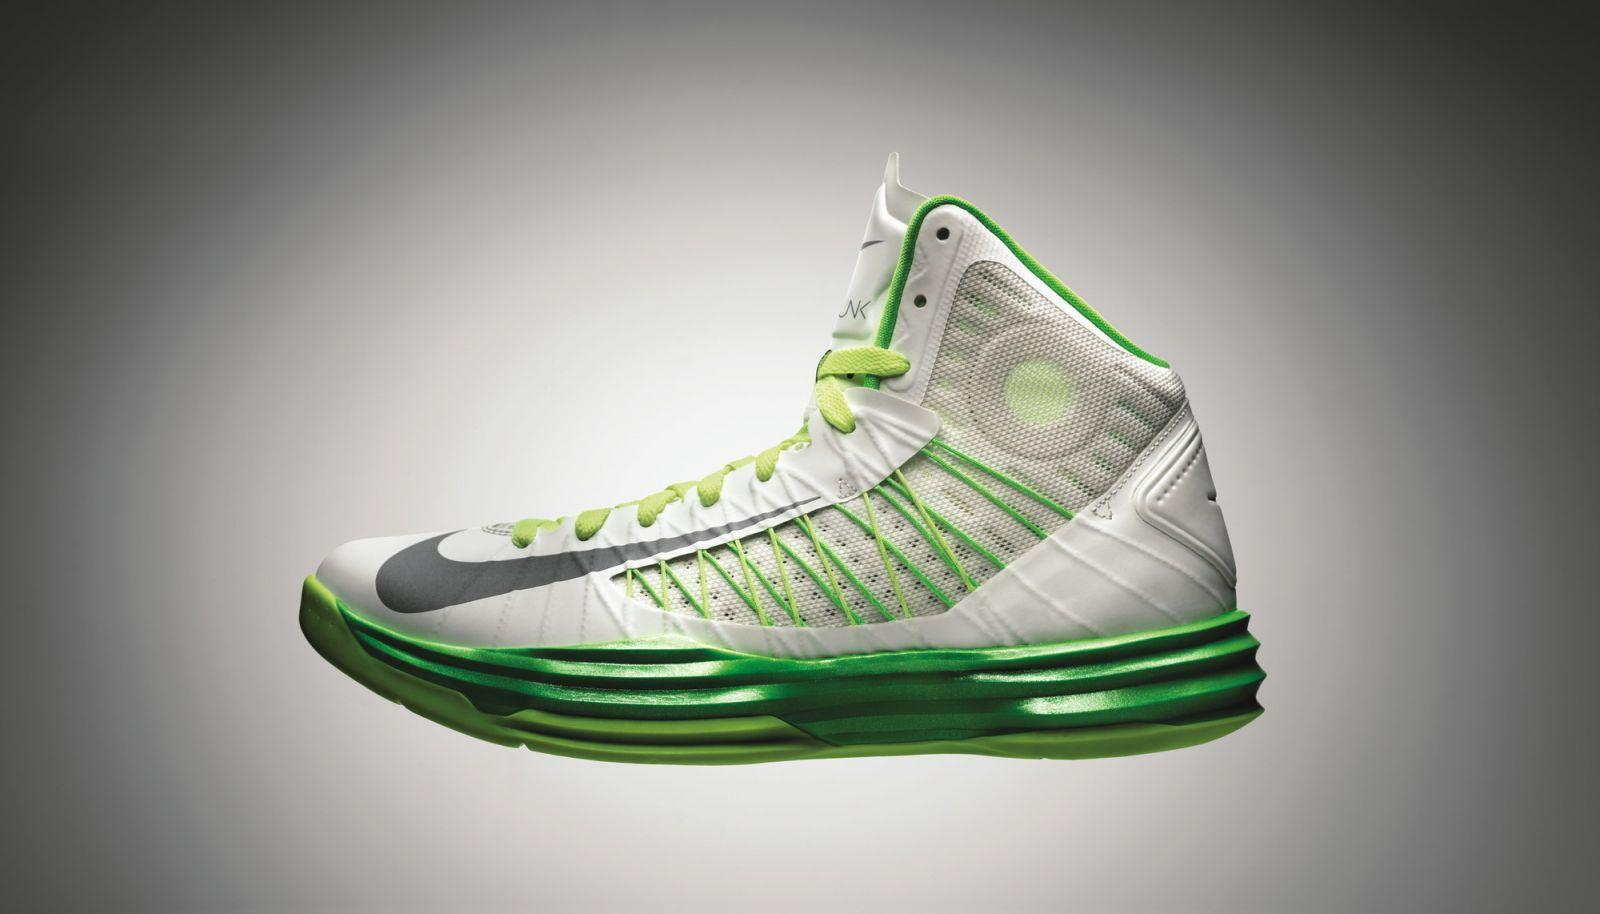 Nike Officially Unveils The Lunar Hyperdunk 2012 | Sole Collector